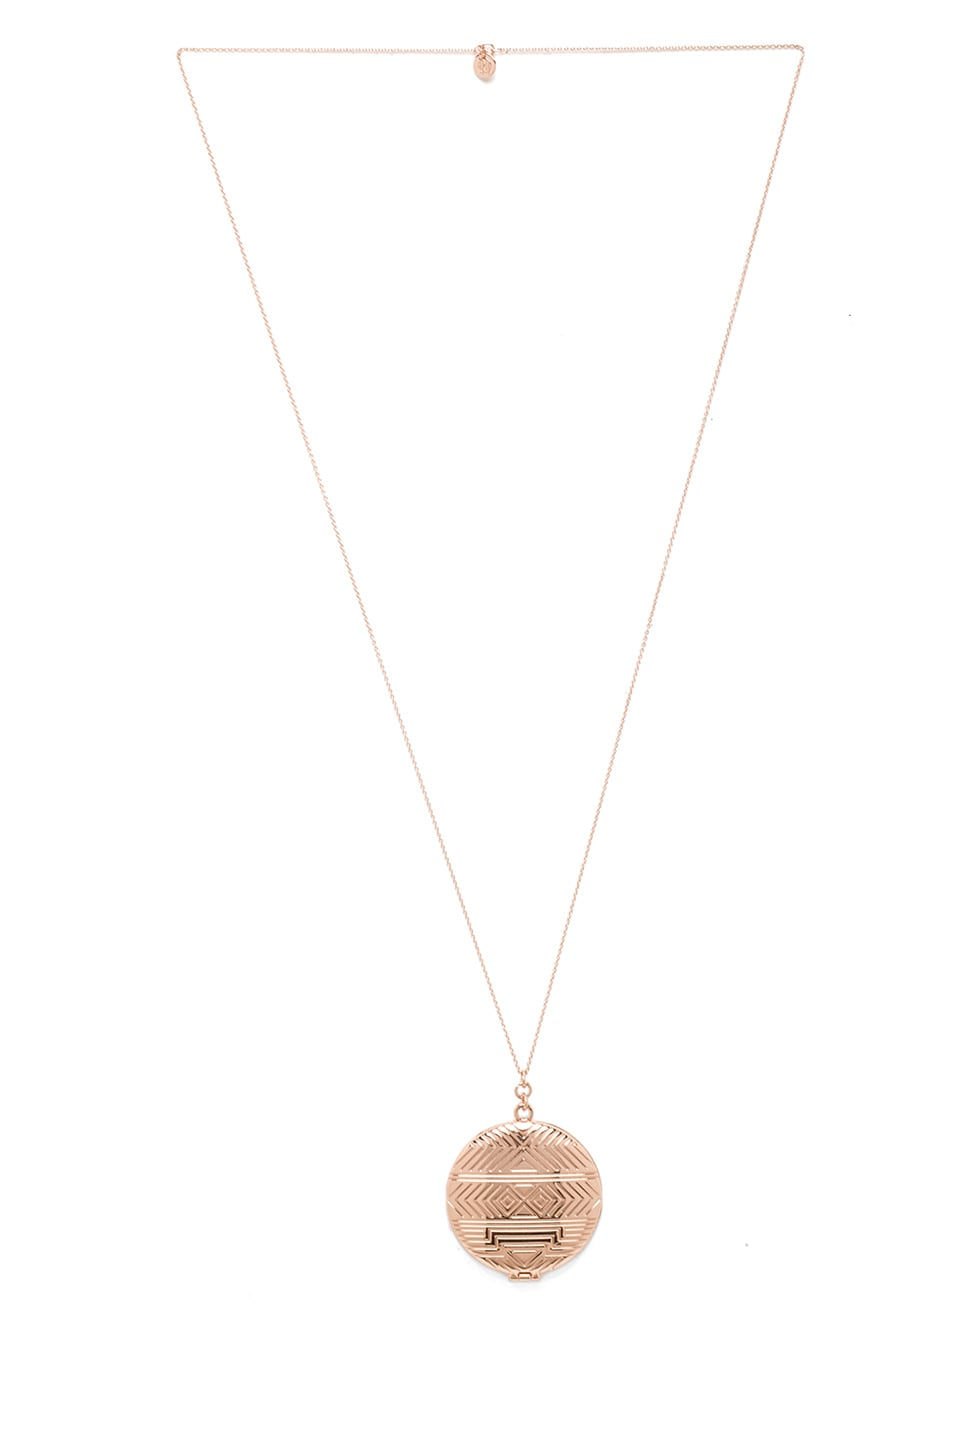 House of Harlow 1960 House of Harlow REVOLVE Exclusive Medallion Locket Necklace in Rose Gold